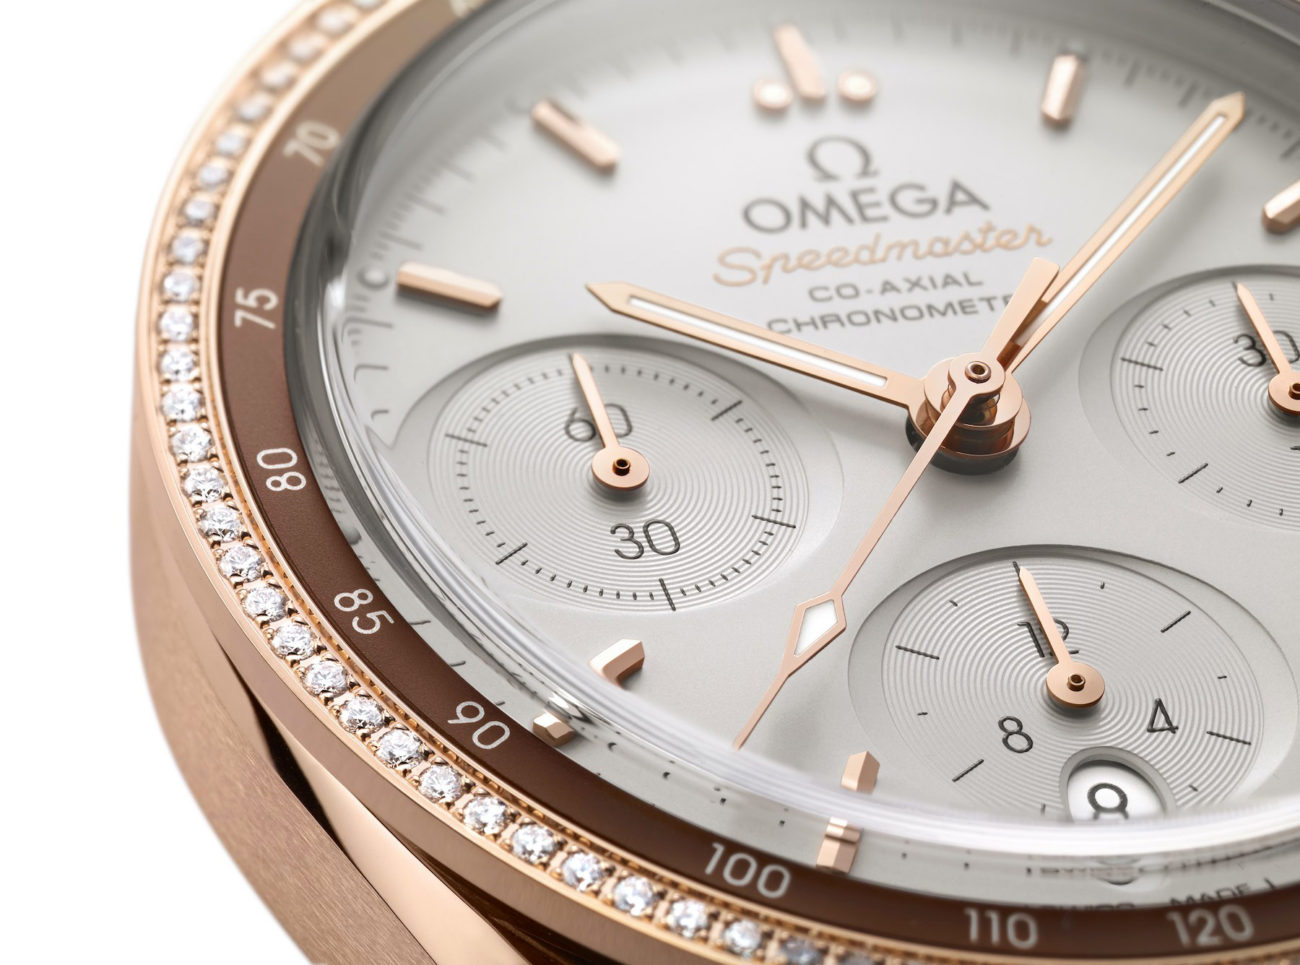 Omega Speedmaster 38 MM Collection watches